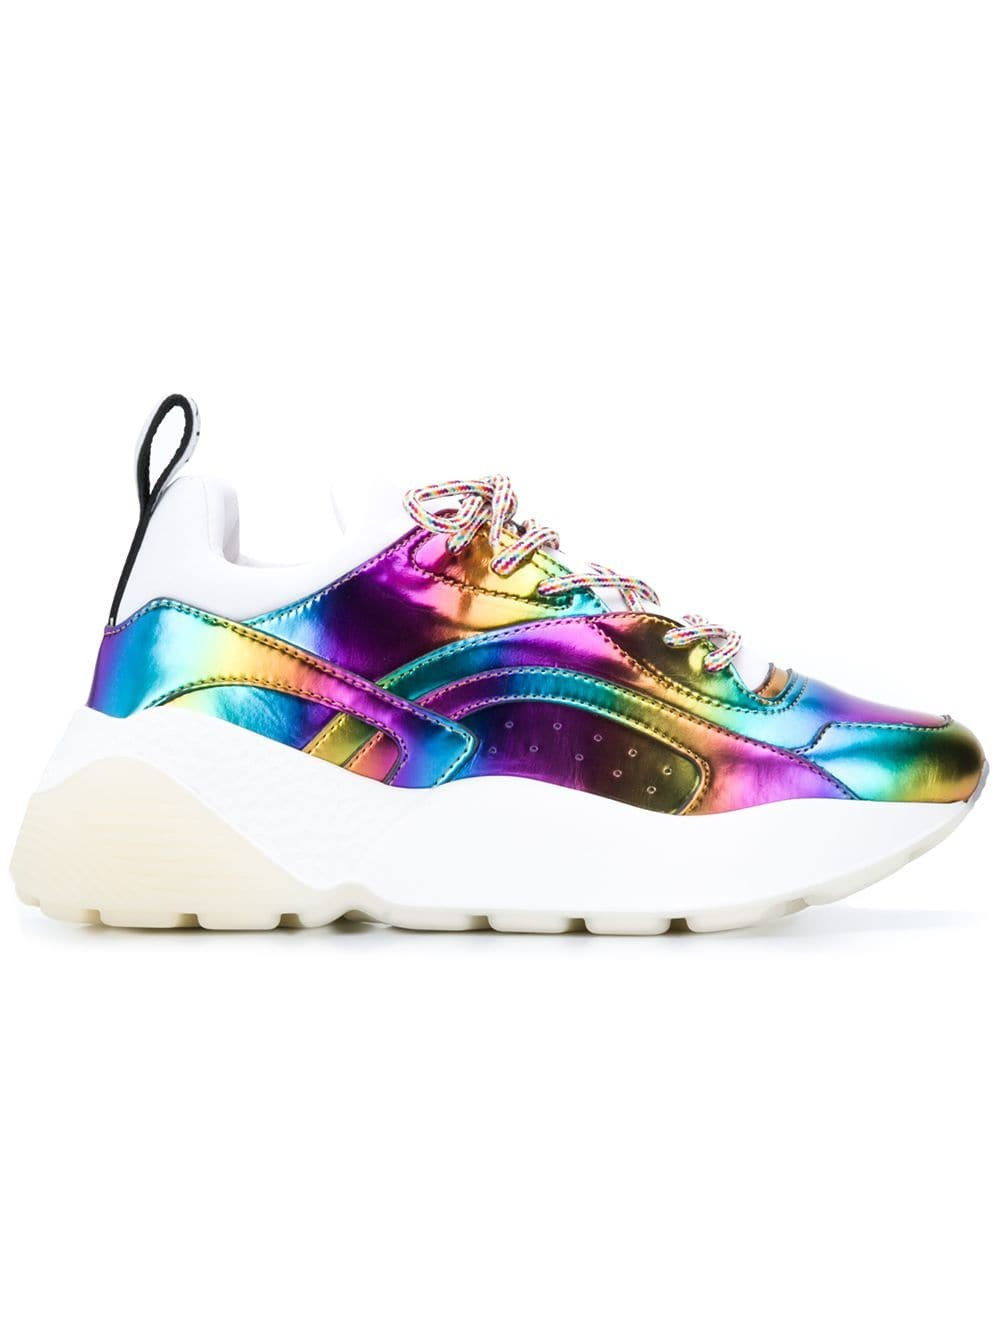 276874ff17e9 stella mccartney SNEAKERS available on montiboutique.com - 27200